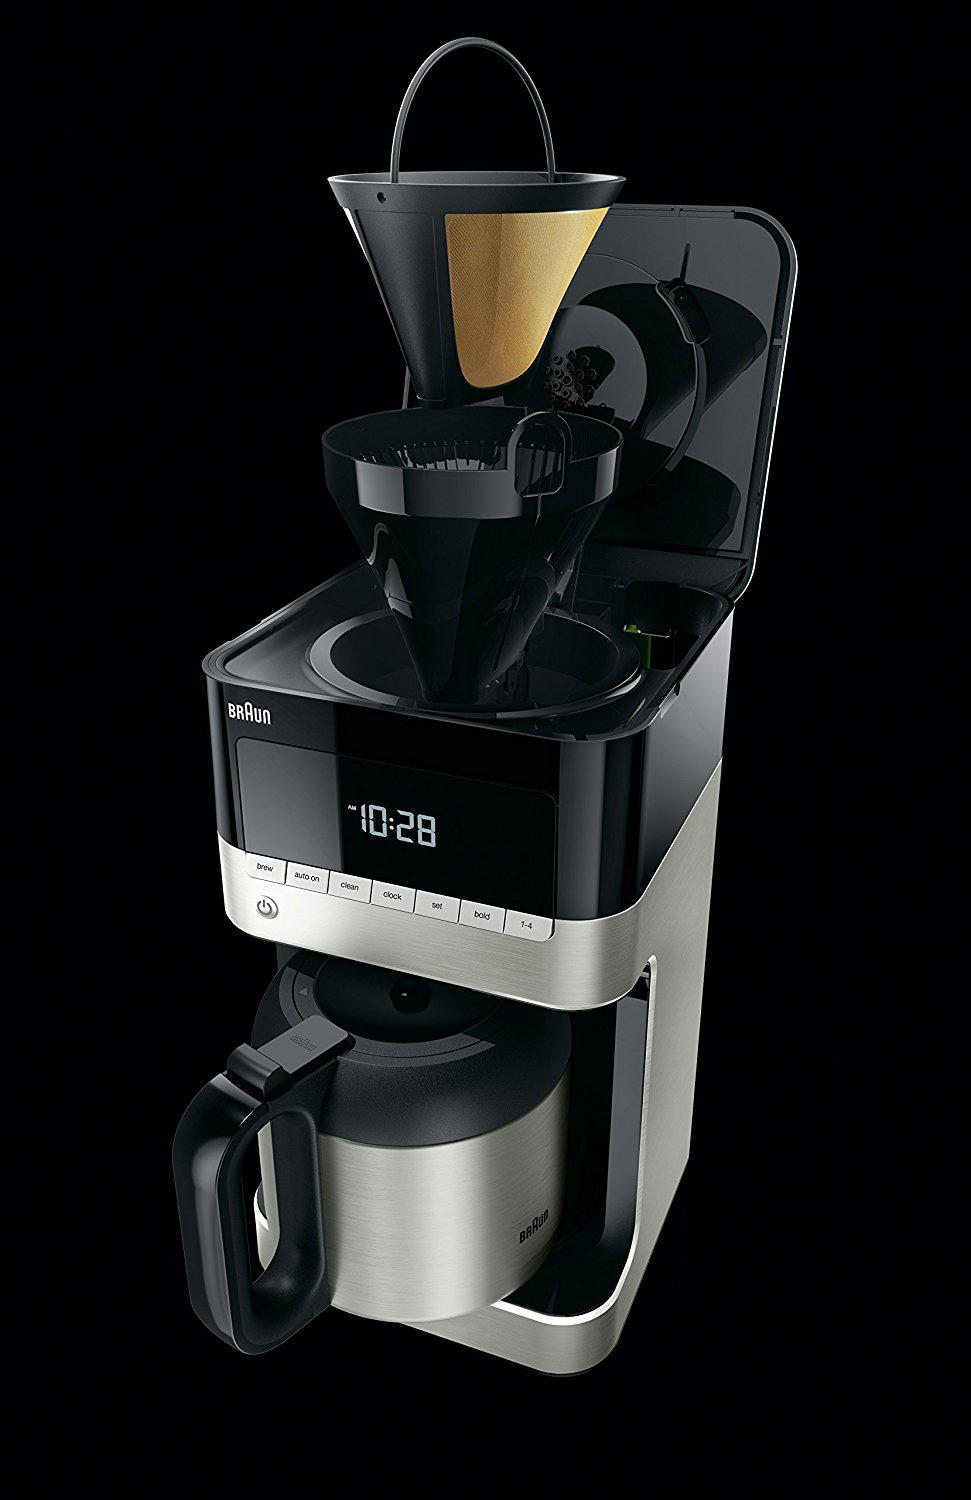 Braun KF7155BK BrewSense Thermal Drip Coffee Maker Best Price - Braun KF7155BK BrewSense Thermal ...